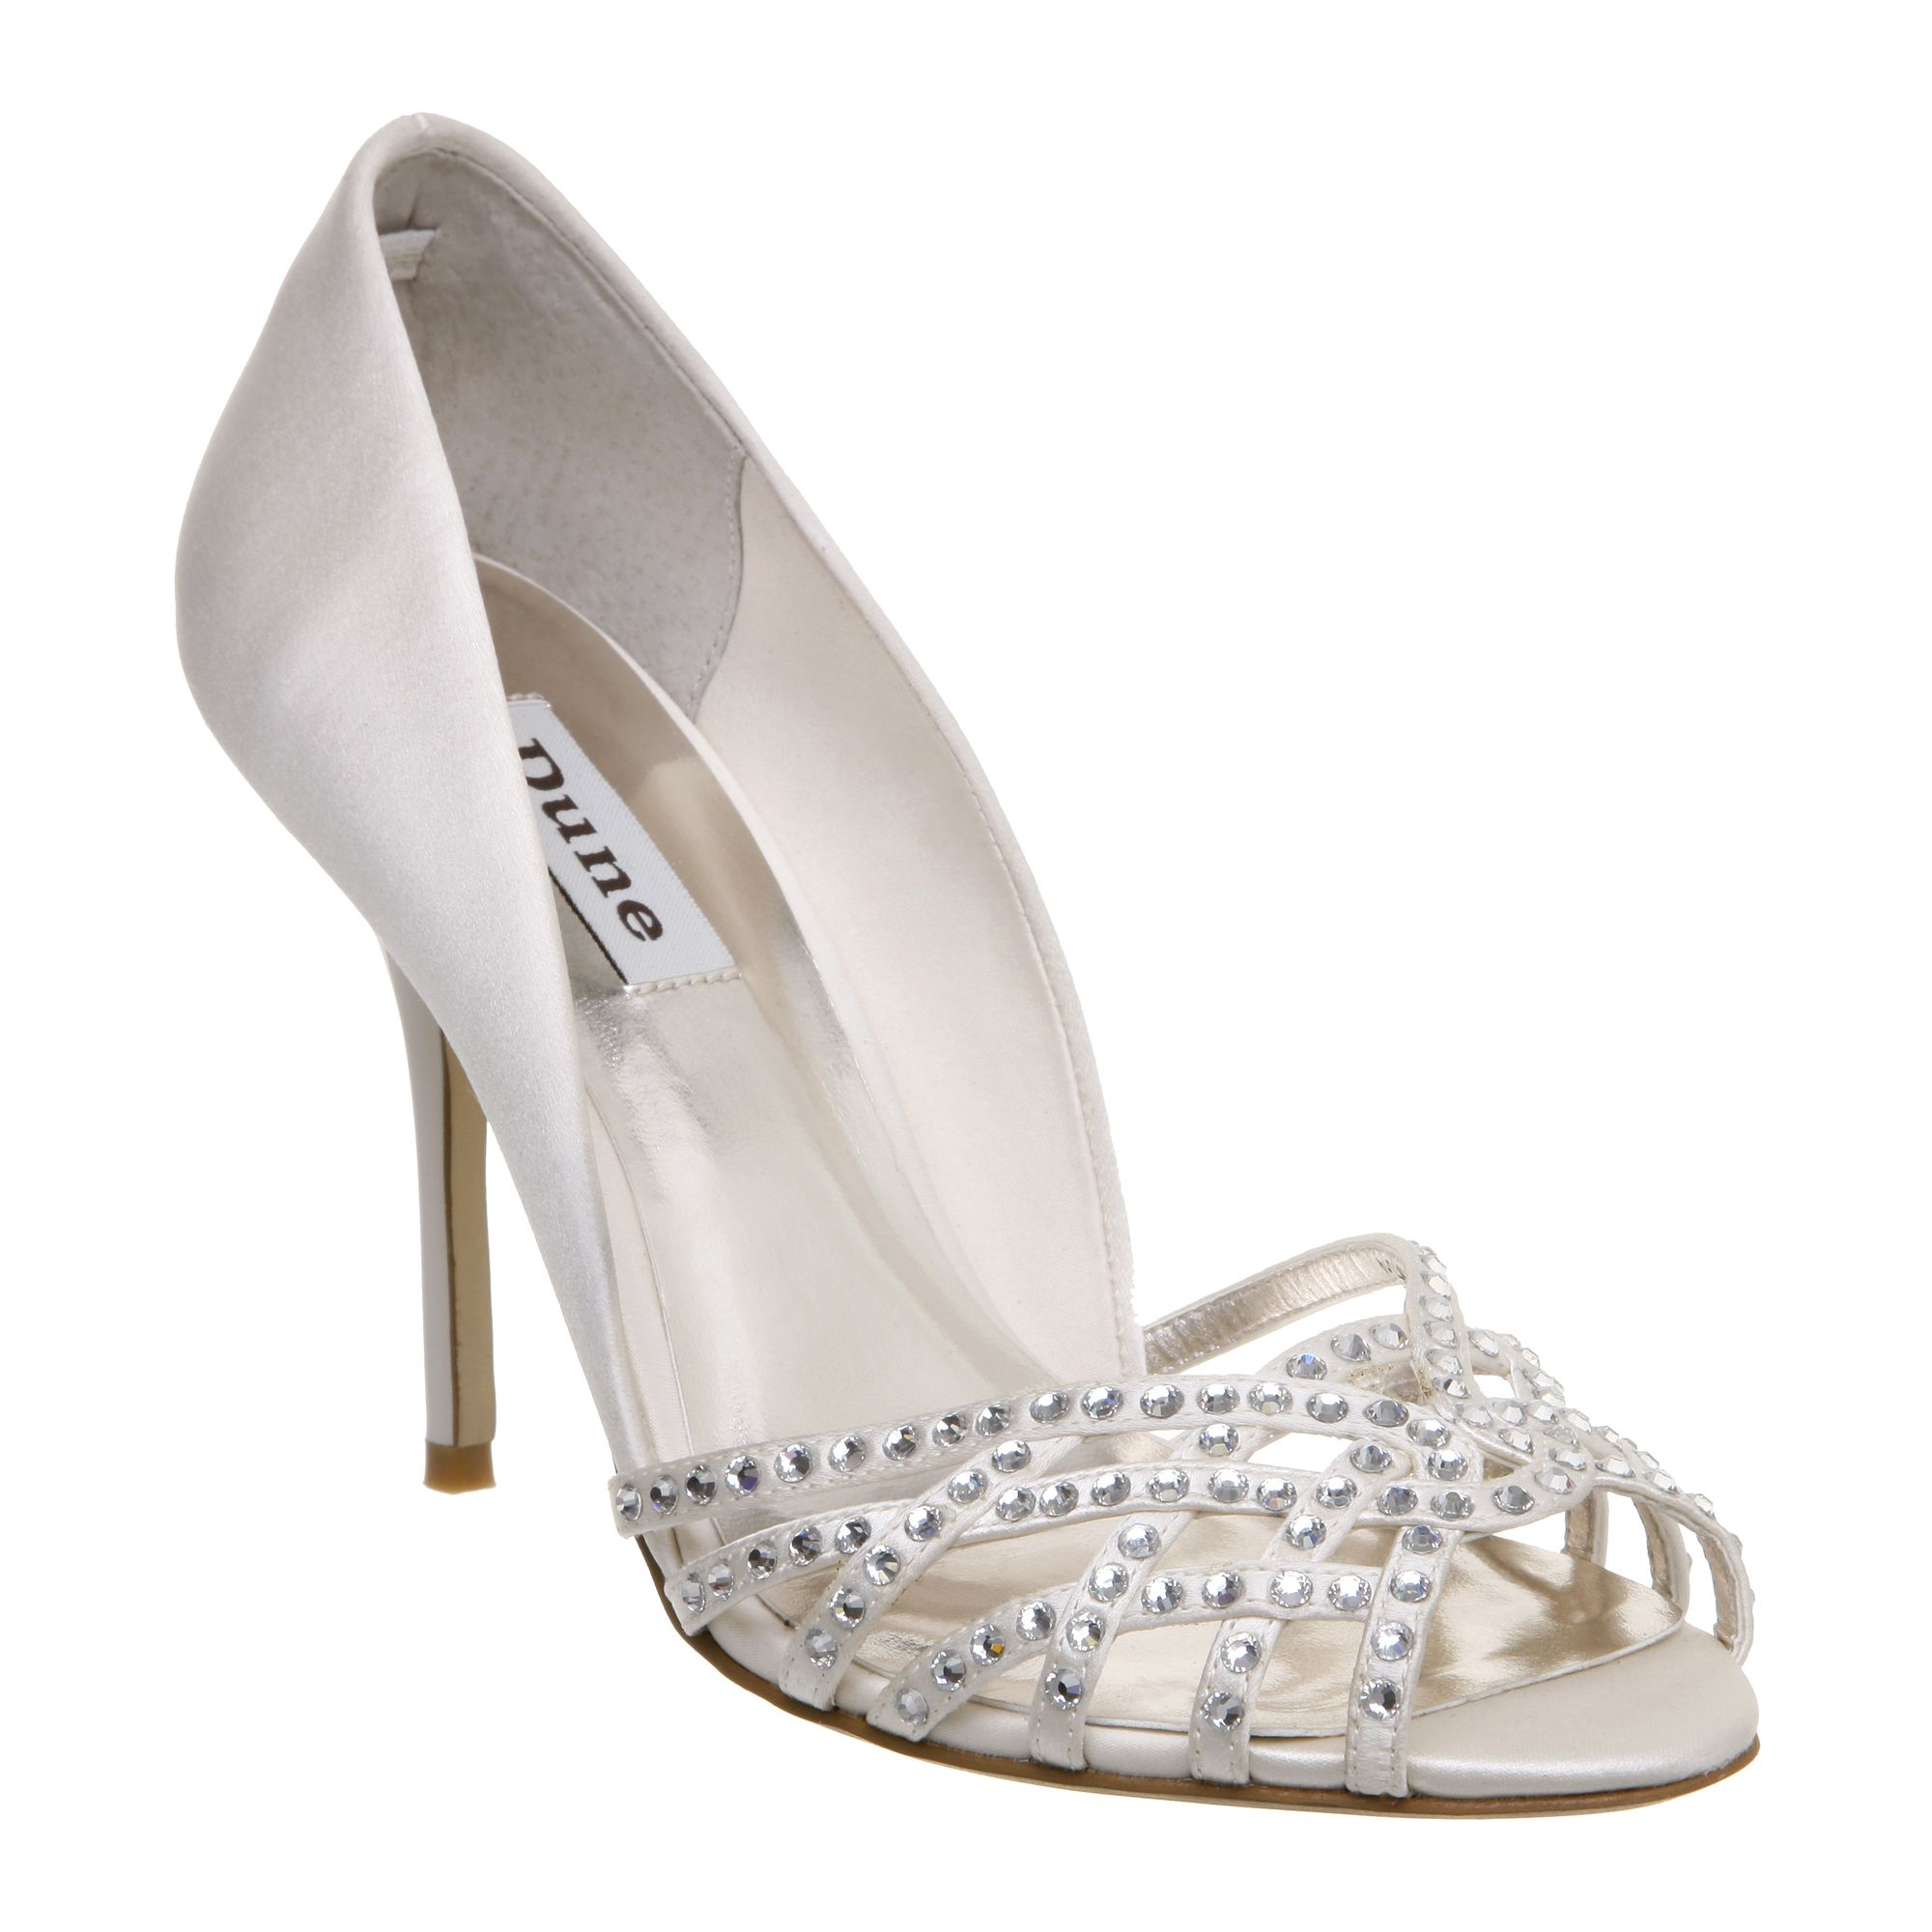 39+ Dune wedding collection shoes ideas in 2021